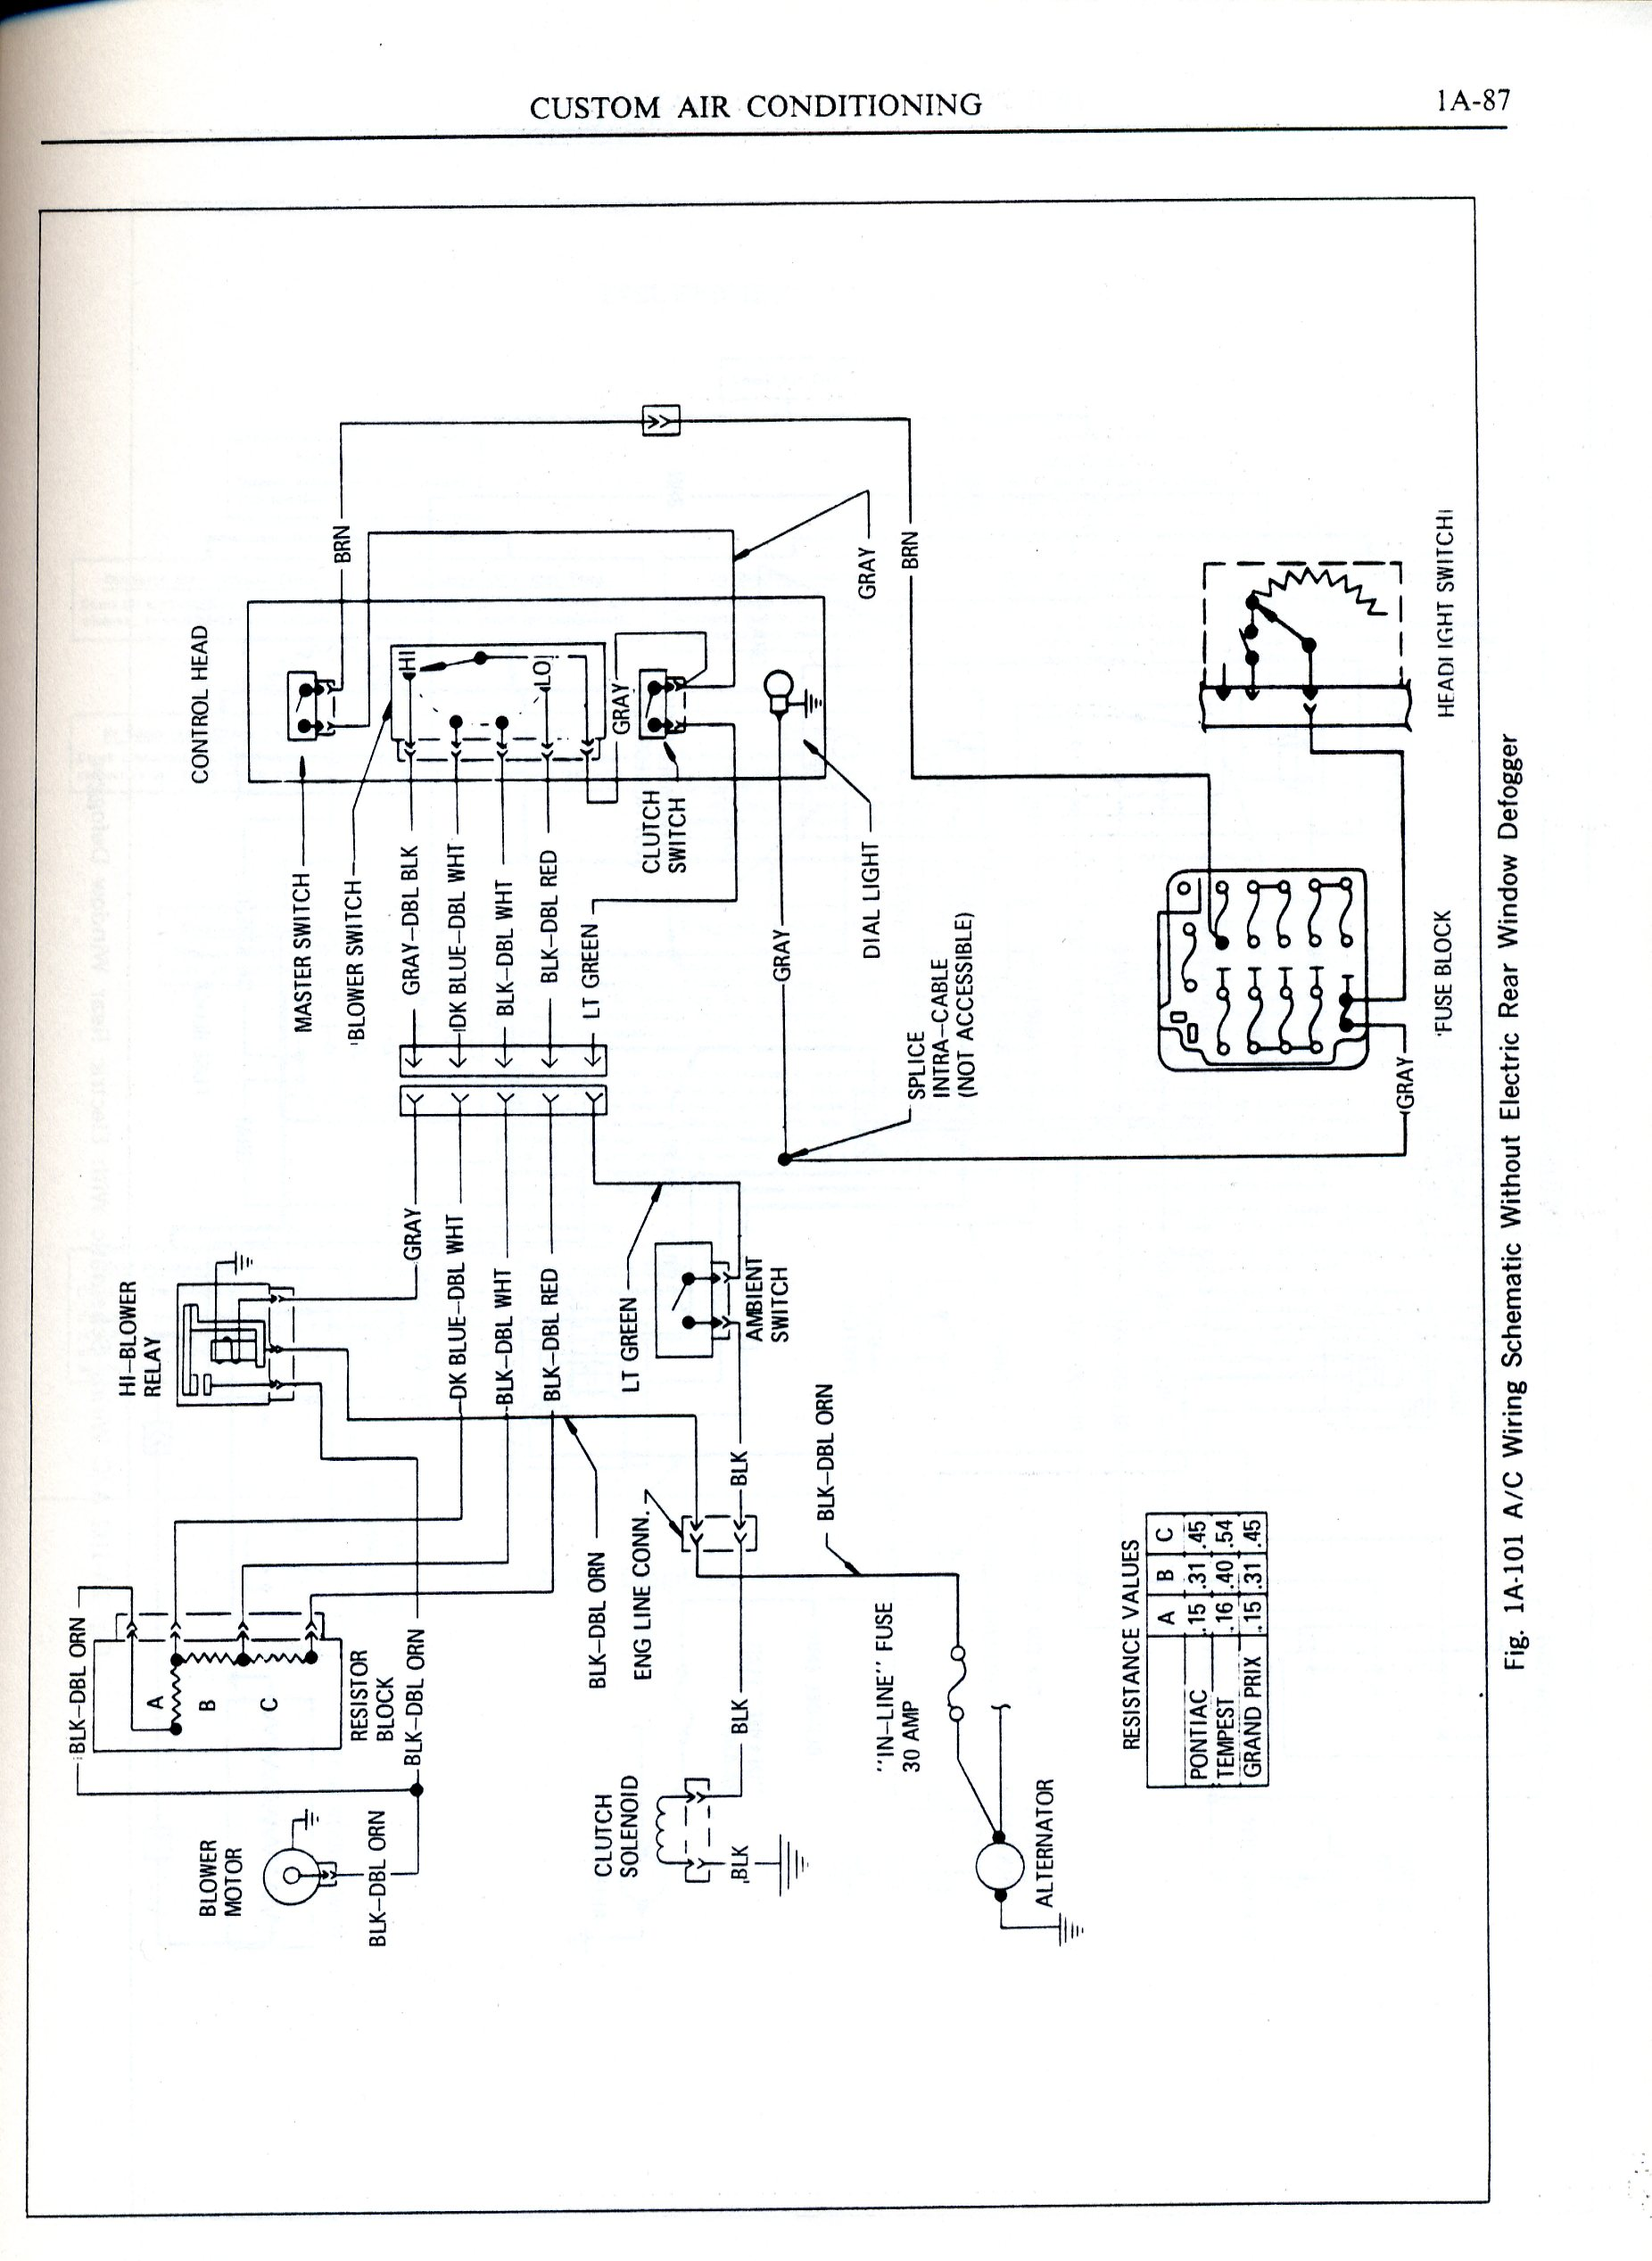 mazda 6 wiring diagram wiring diagram and hernes mazda car radio stereo audio wiring diagram autoradio connector